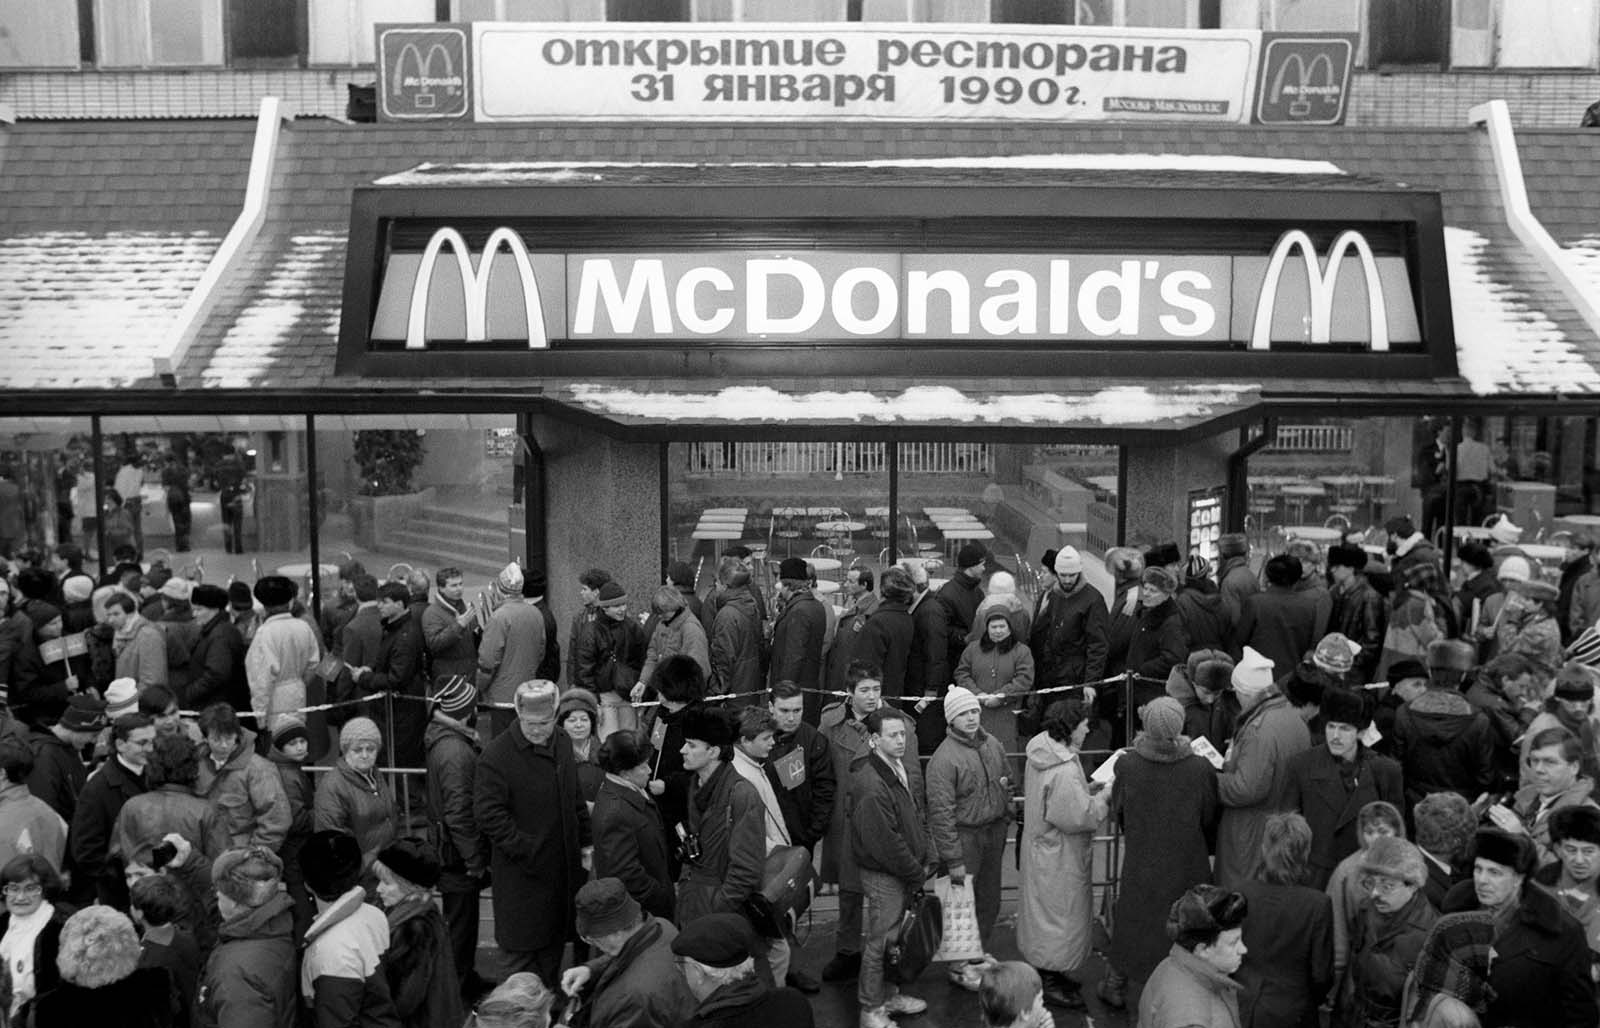 On January 31, 1990, the first Soviet McDonald's opened in Moscow. The first McDonald's ever in Soviet Union.